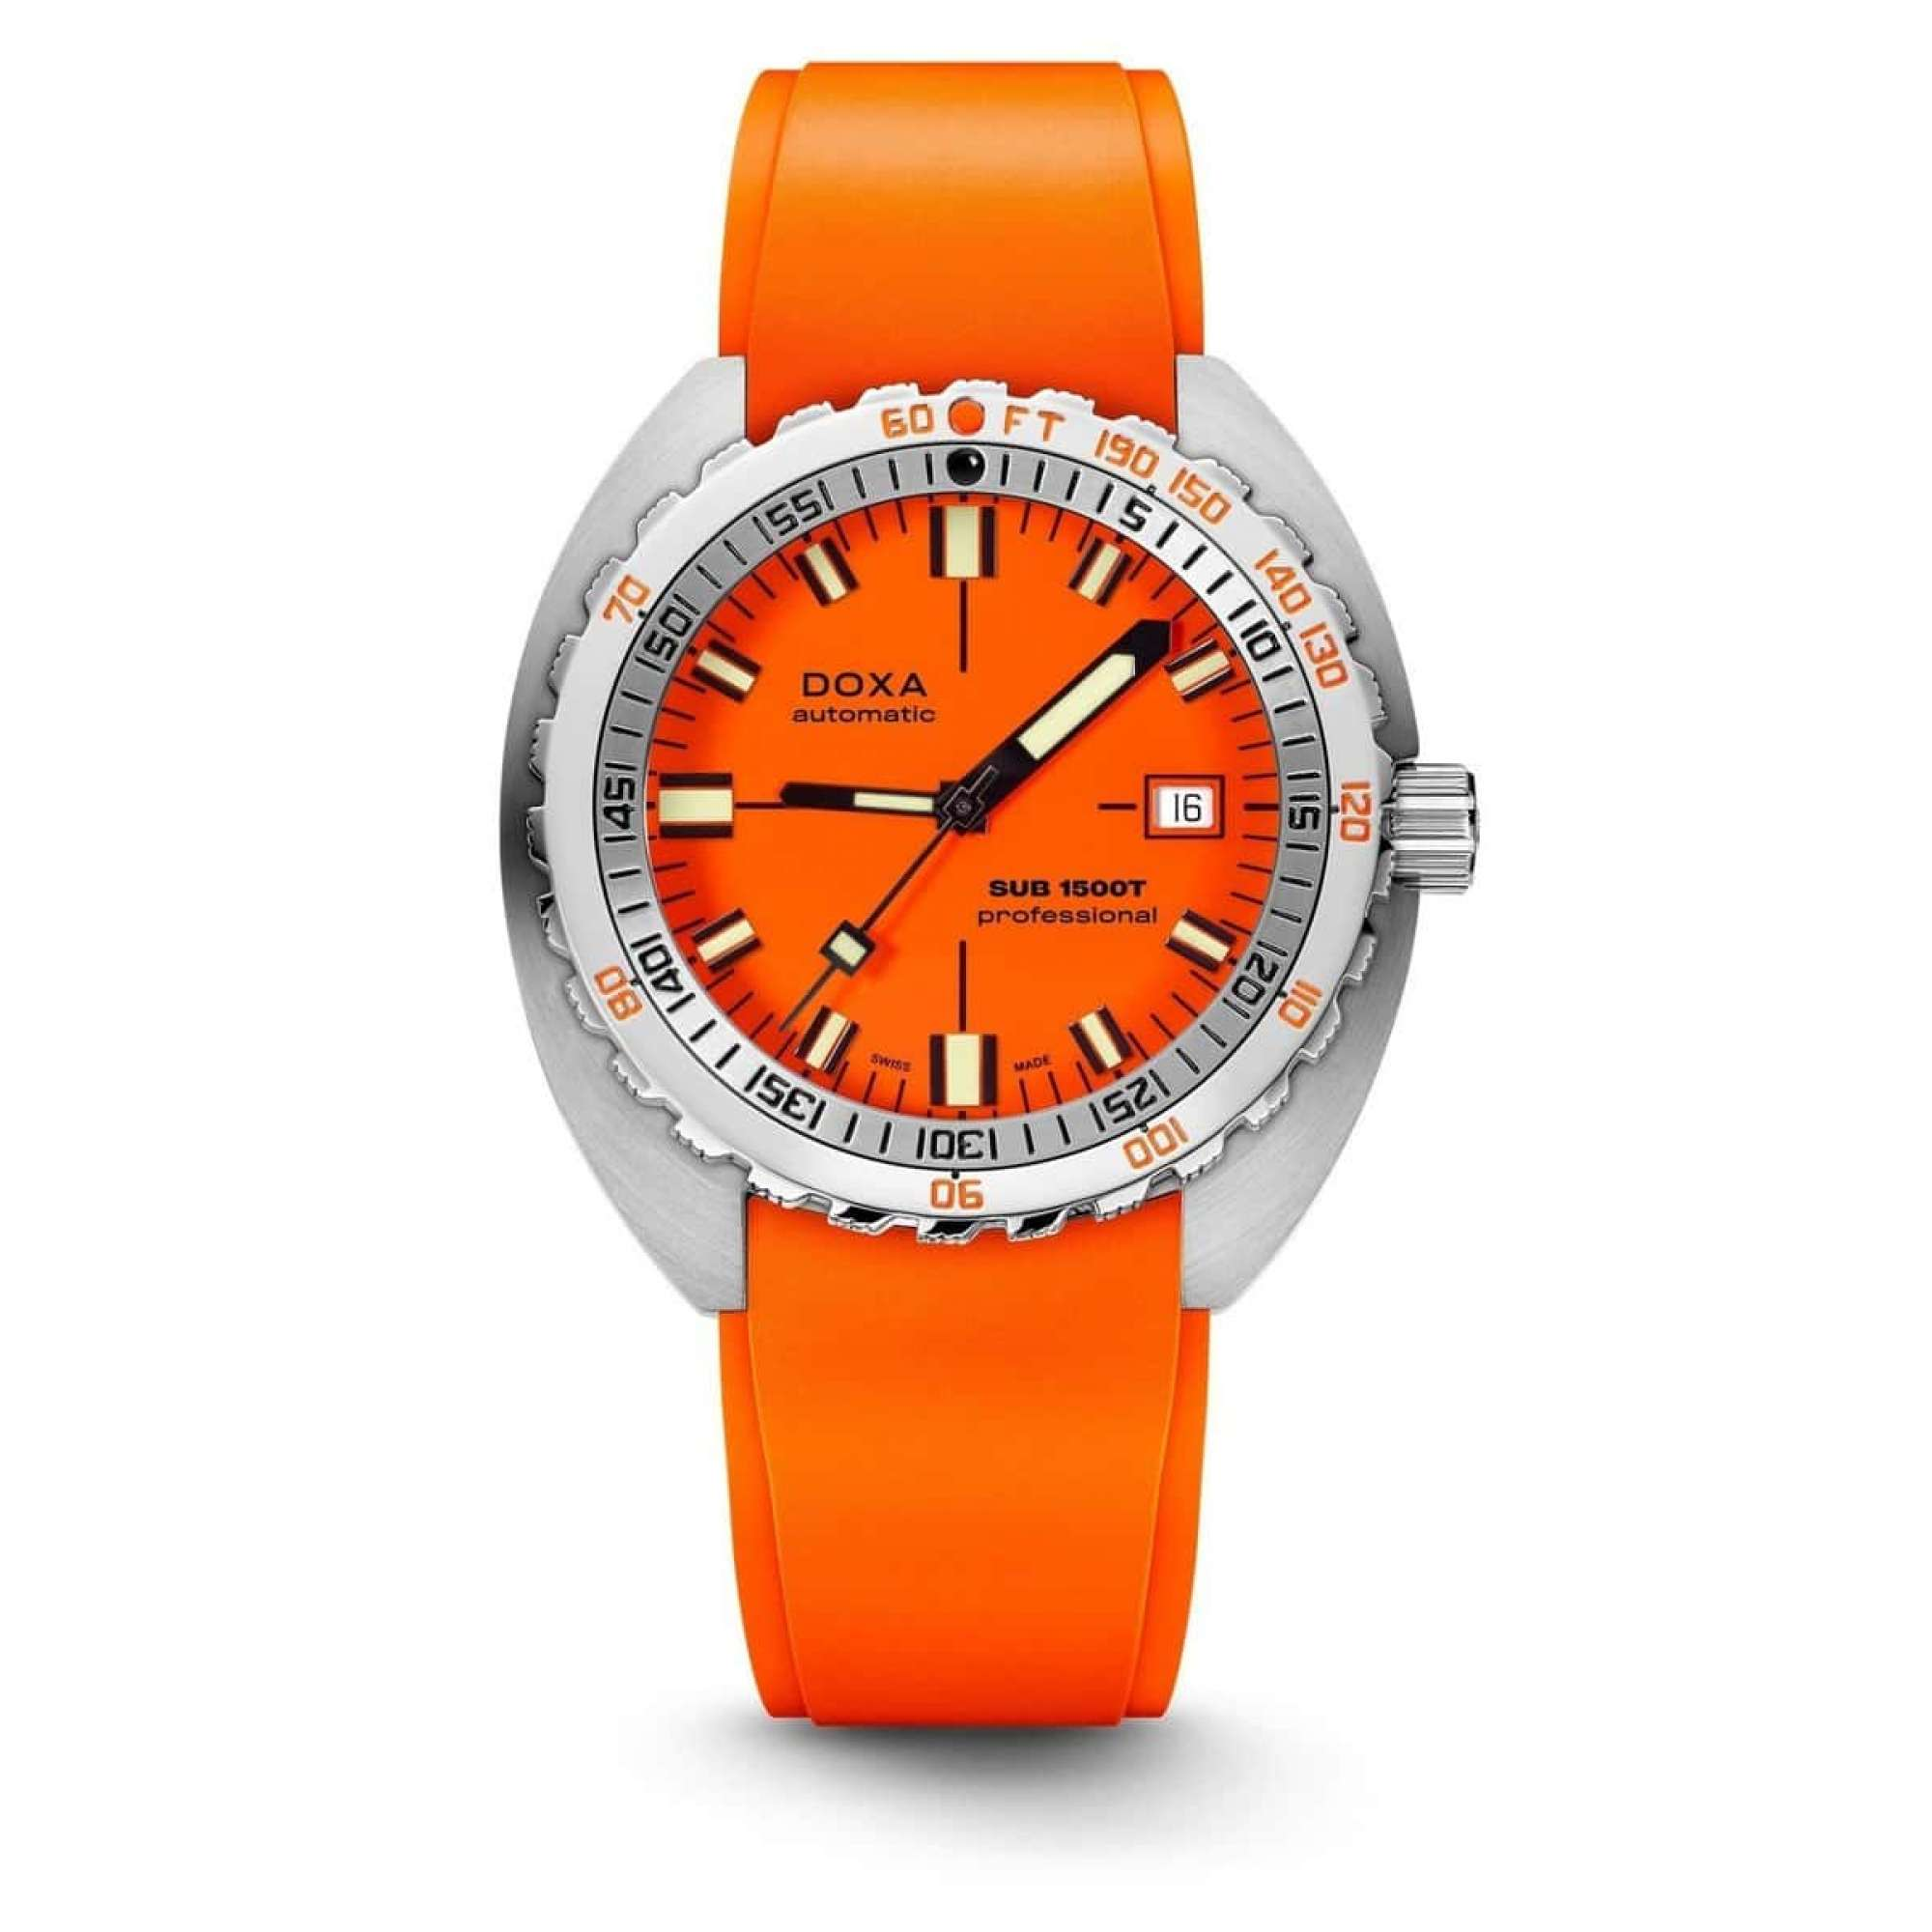 Doxa SUB 1500T Professional 881.10.351.21 – Swiss Time